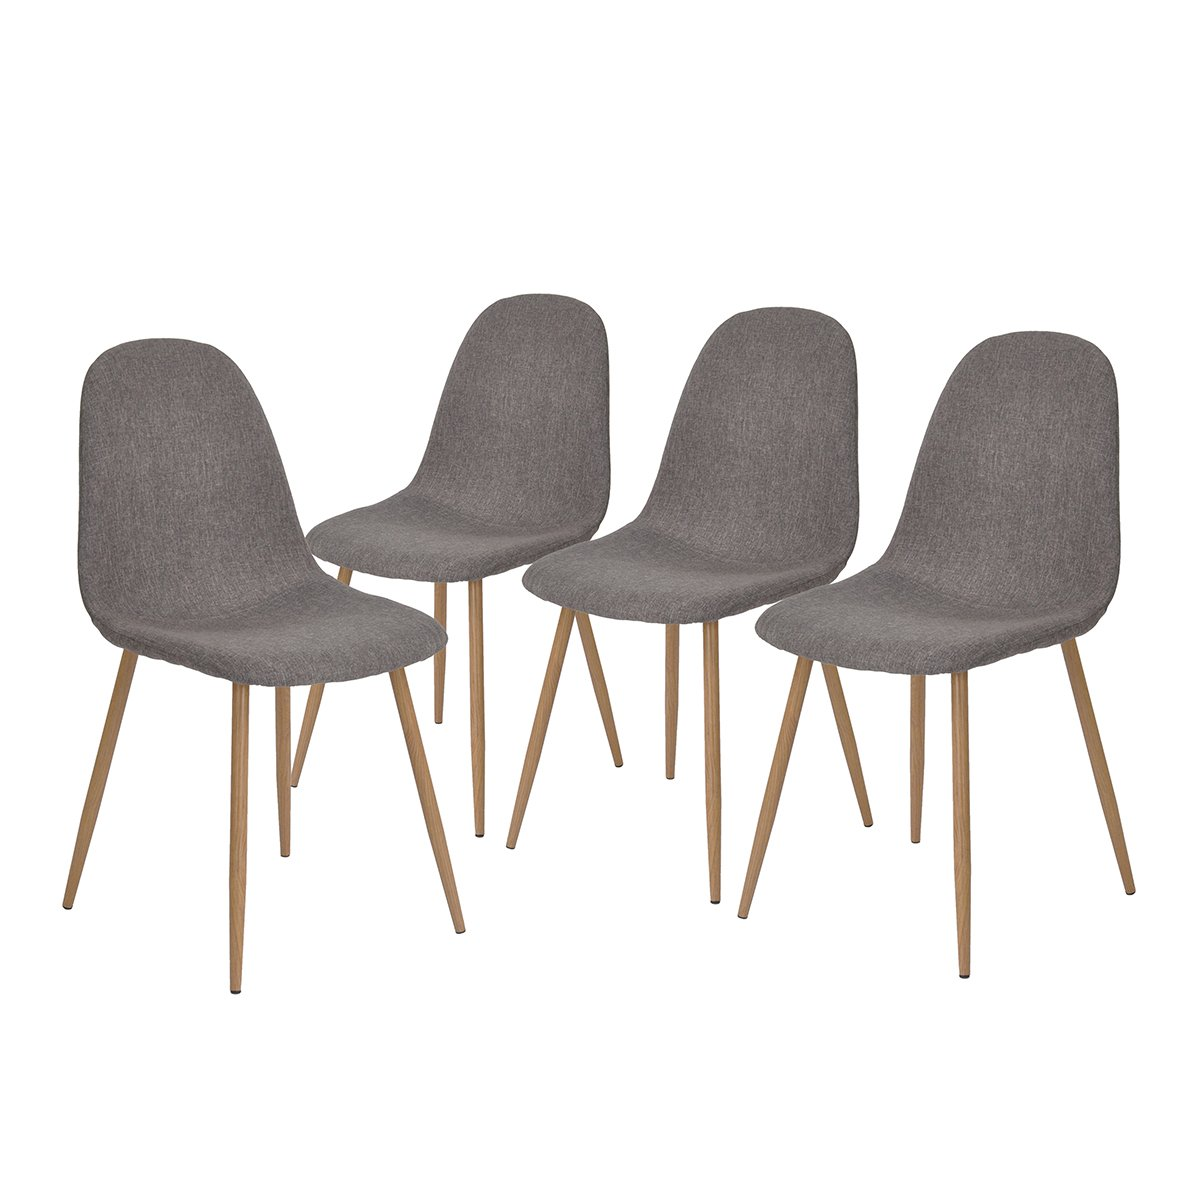 GreenForest Dining Chairs Set of 4,Metal Legs Fabric Cushion Seat Back Modern Dining Side Chairs,Gray by GreenForest